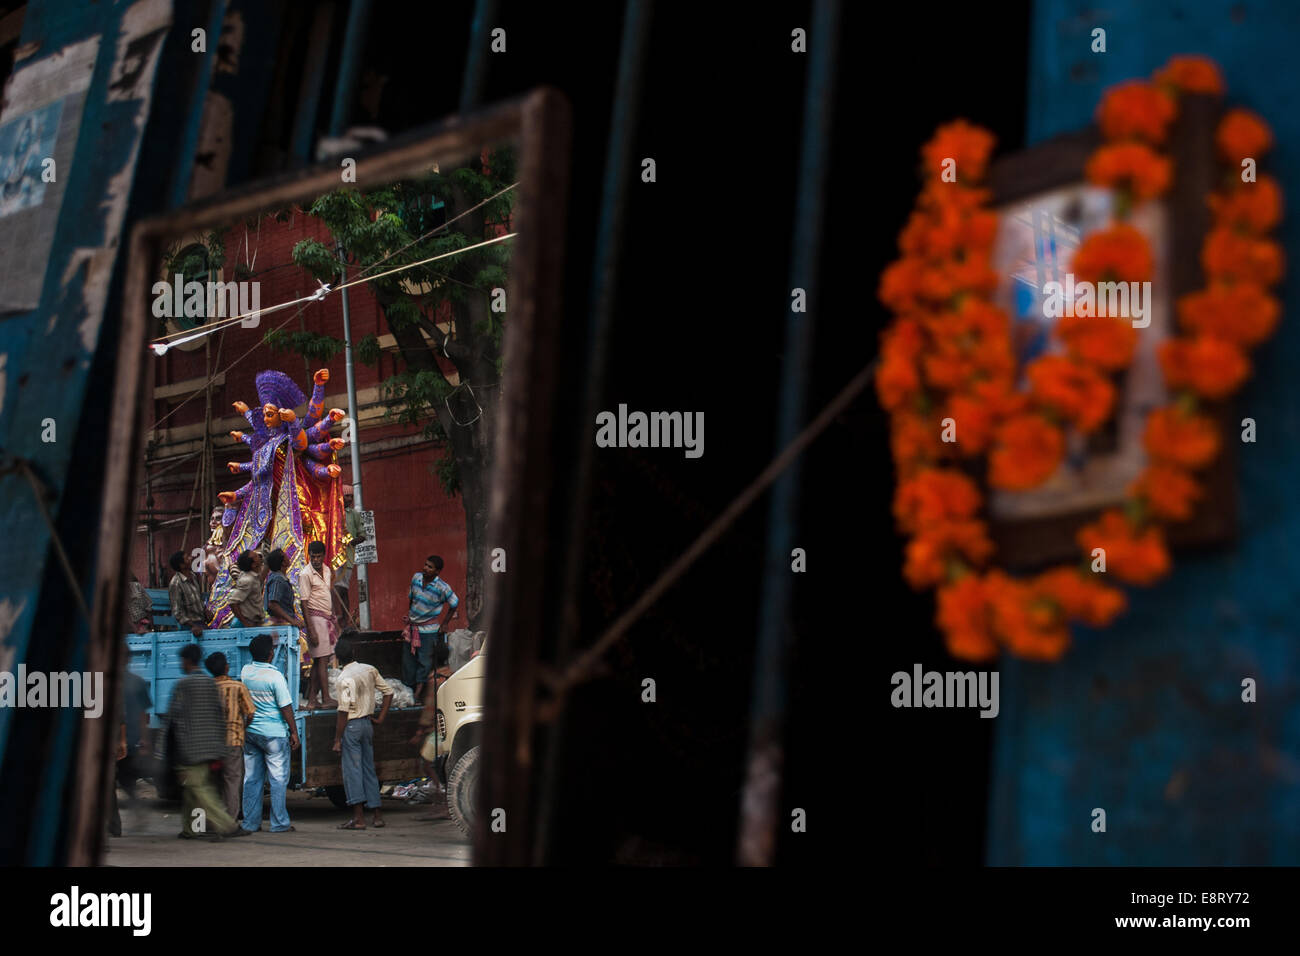 Hindu goddess Durga is reflect on a mirror,Kolkata,West Bengal,India - Stock Image